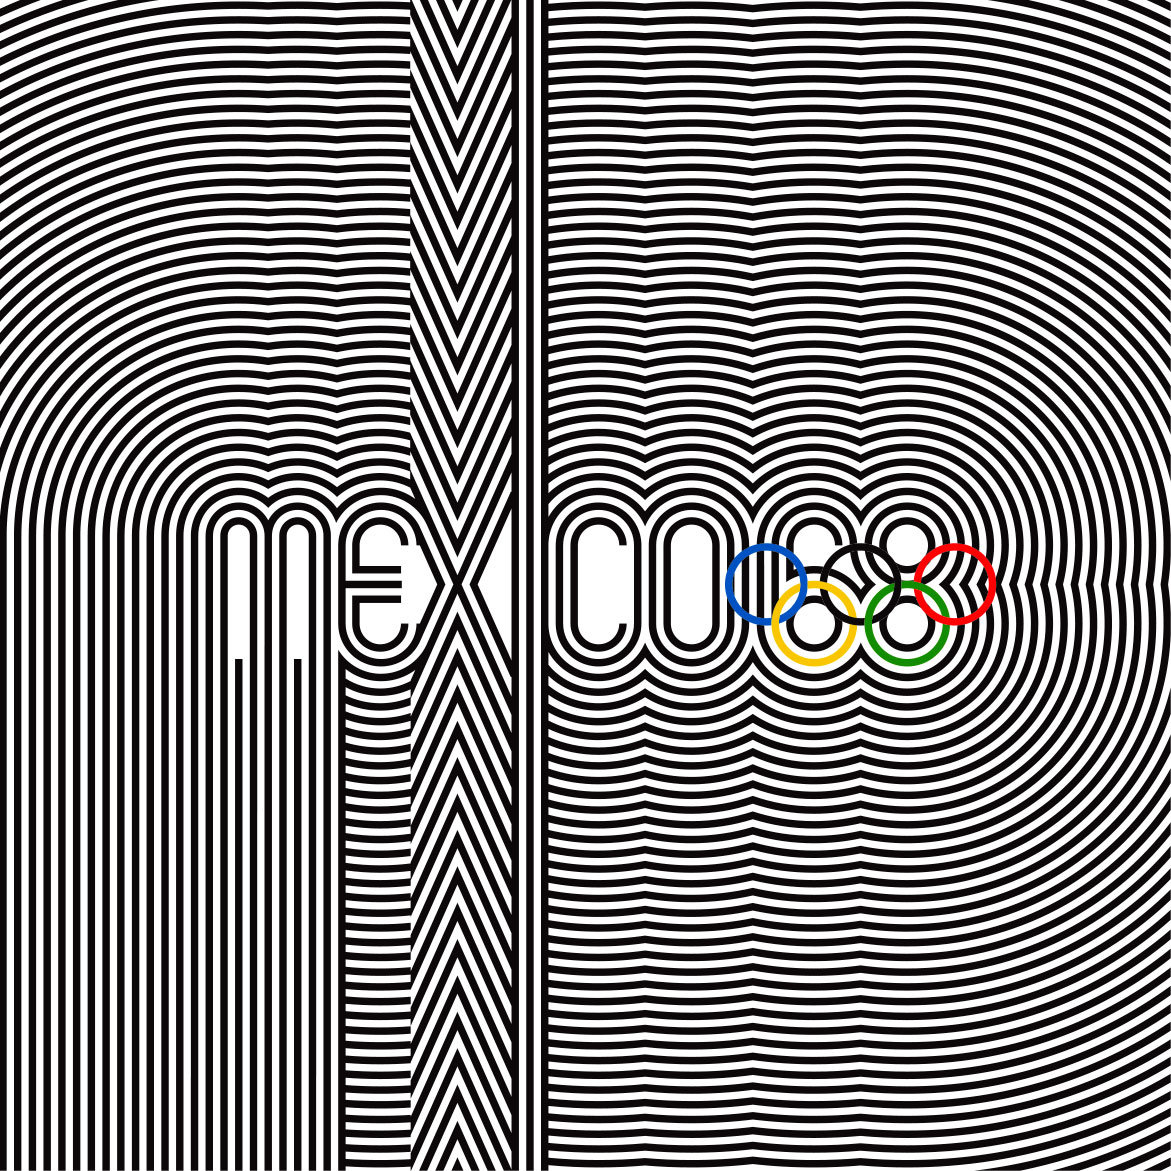 Wyman_Mexico_68_Olympics_radiating